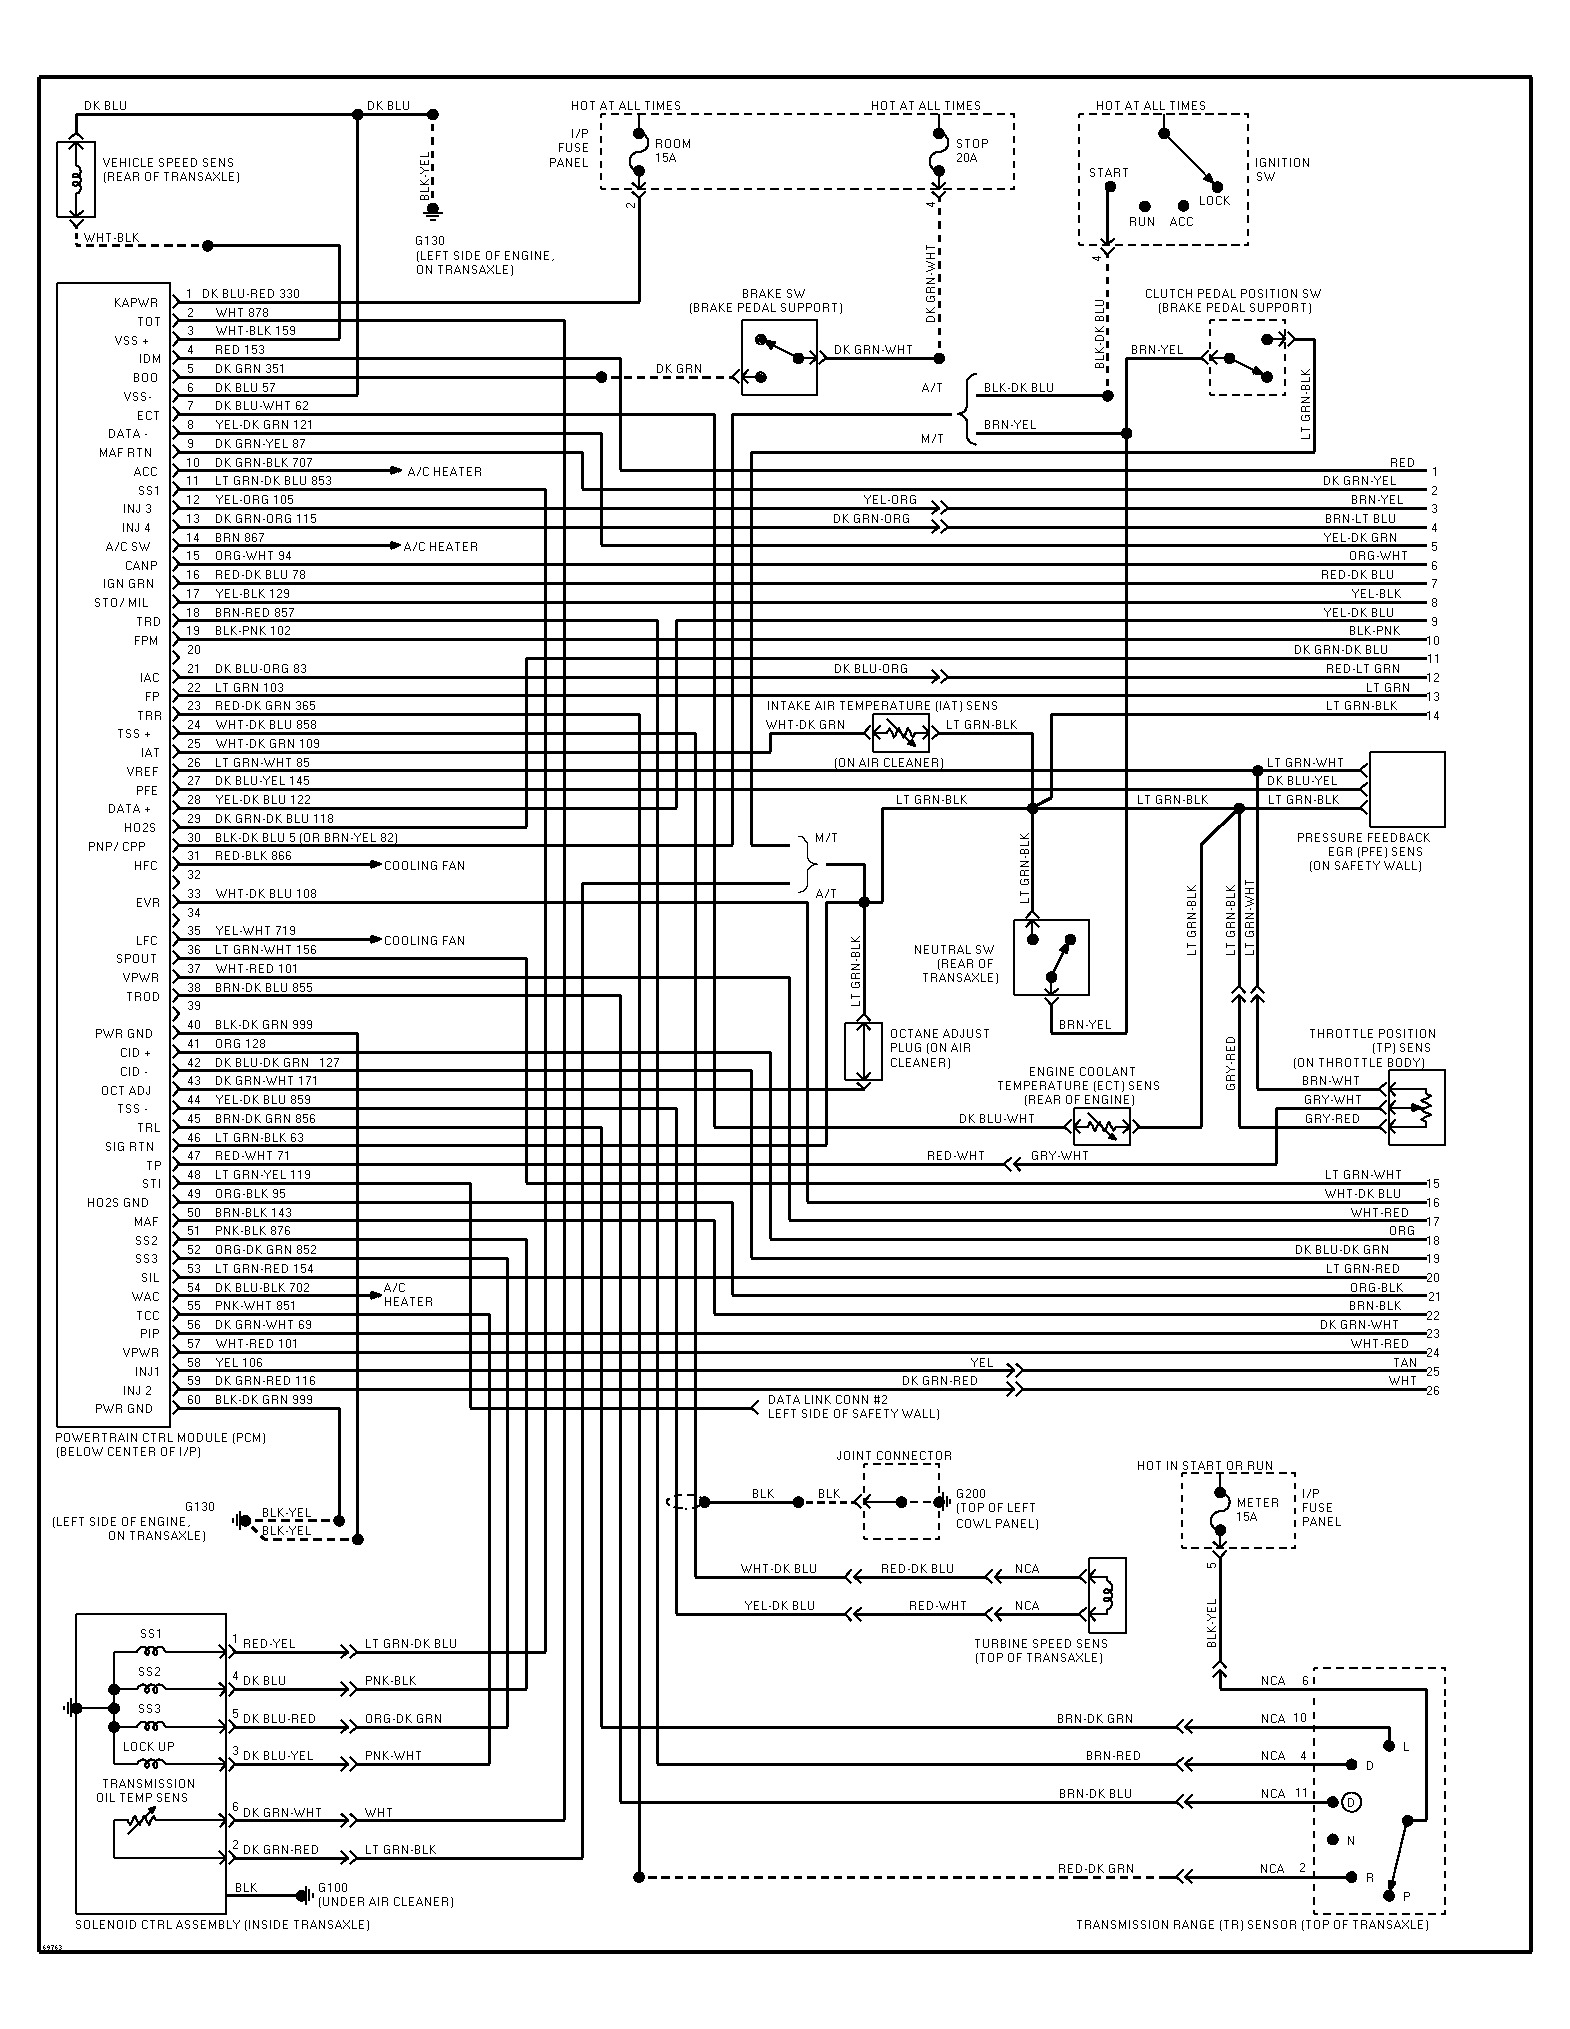 original 1995 ford escort wiring diagram i need to find a color coded 1998 ford escort wiring diagram at virtualis.co